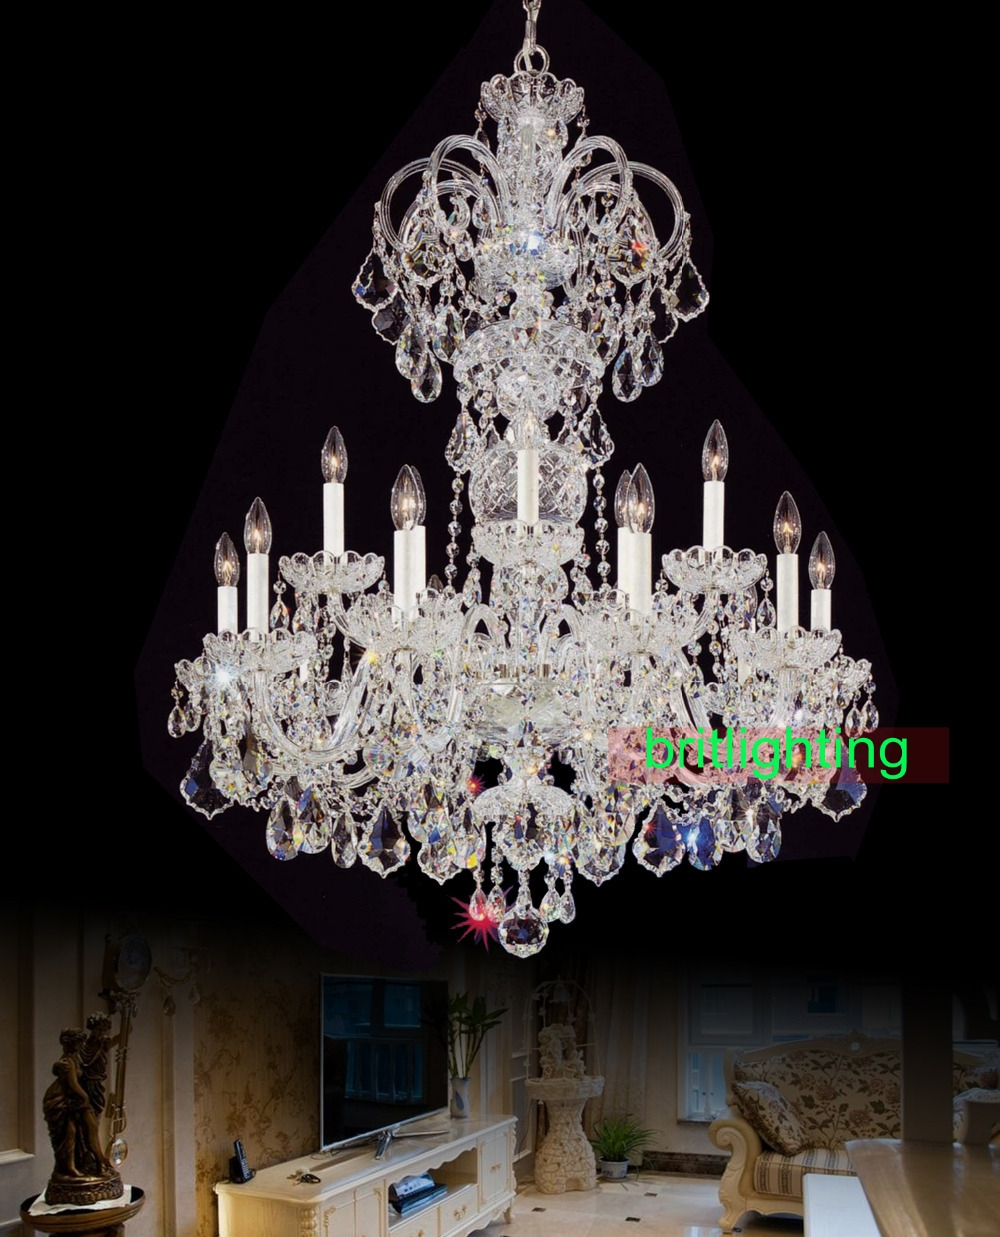 Online Buy Wholesale Big Chandelier From China Big Chandelier With Regard To Huge Crystal Chandeliers (Image 11 of 15)